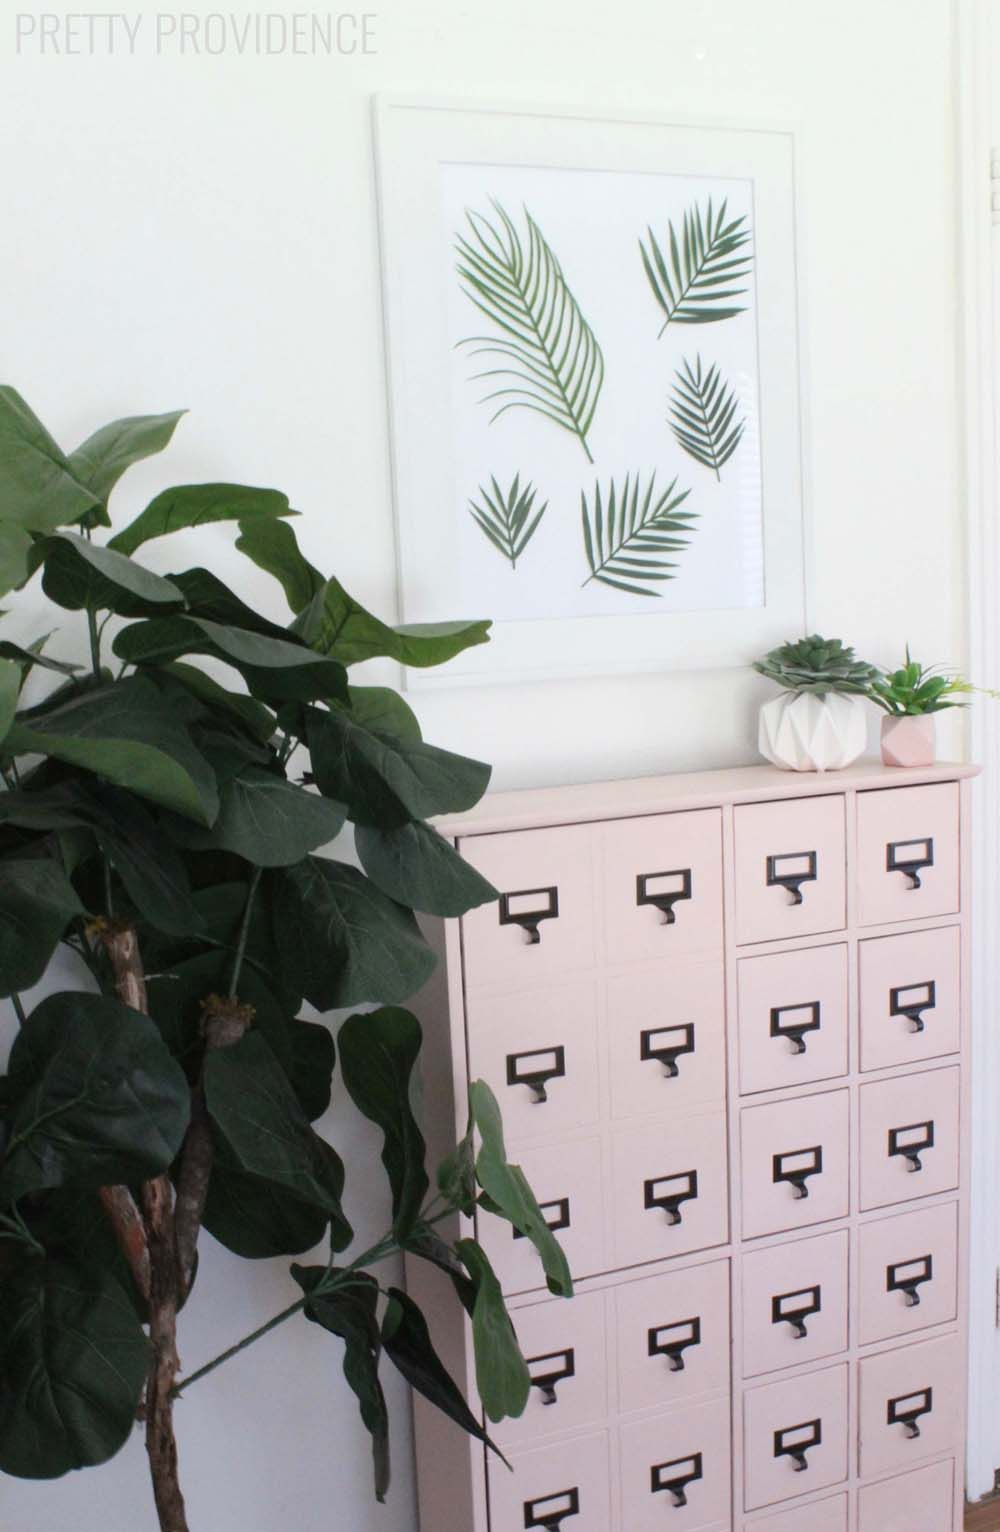 Apothekerskast In Modern Interieur Diy Tropical Leaf Wall Art Beauty Out Of Ashes Pinterest Diy